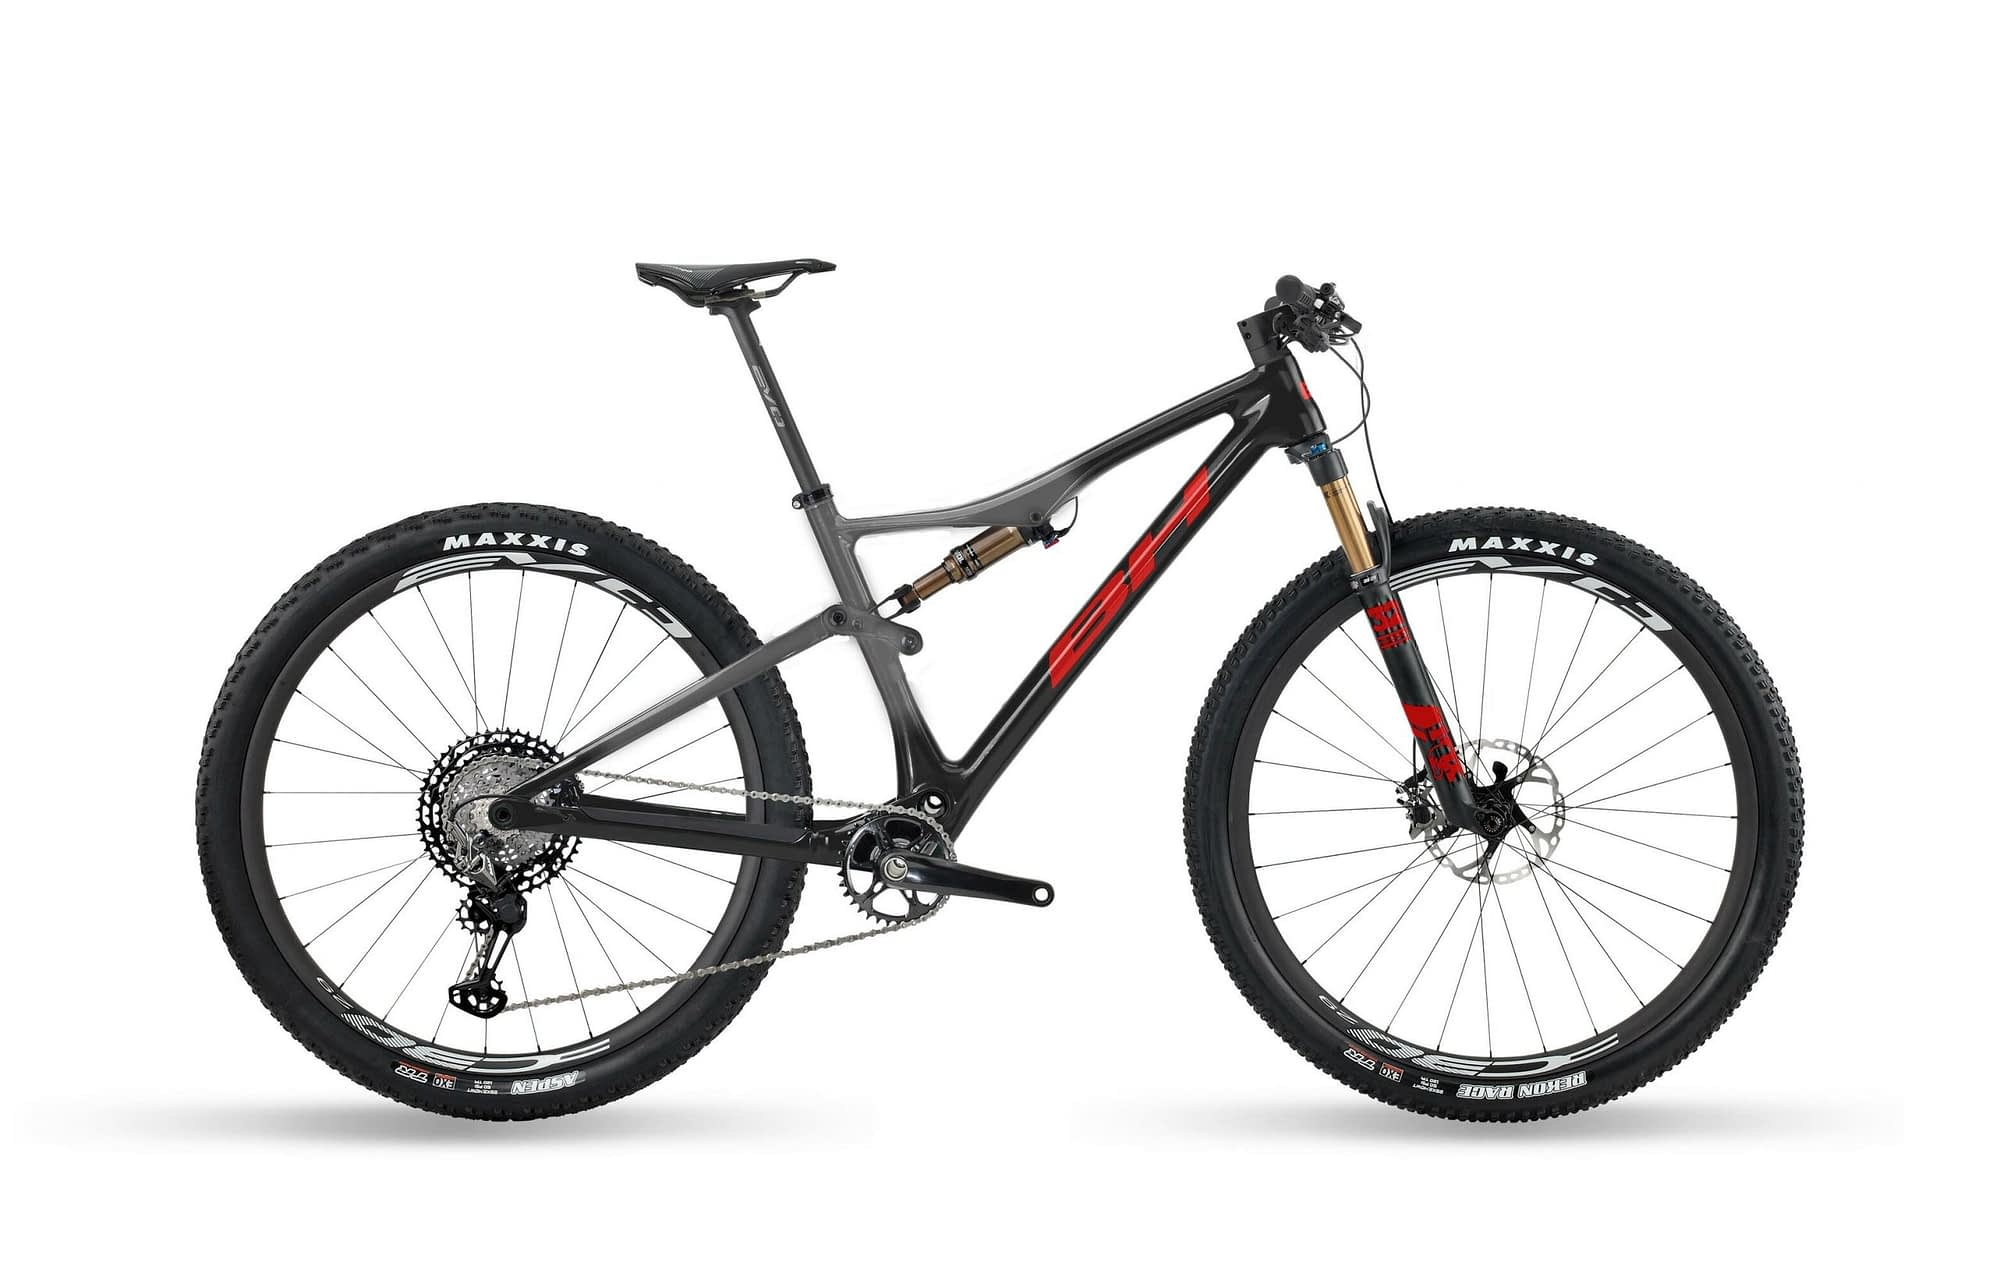 BH LYNX RACE EVO CARBON 9.5 - Anthracite / Rouge, XL